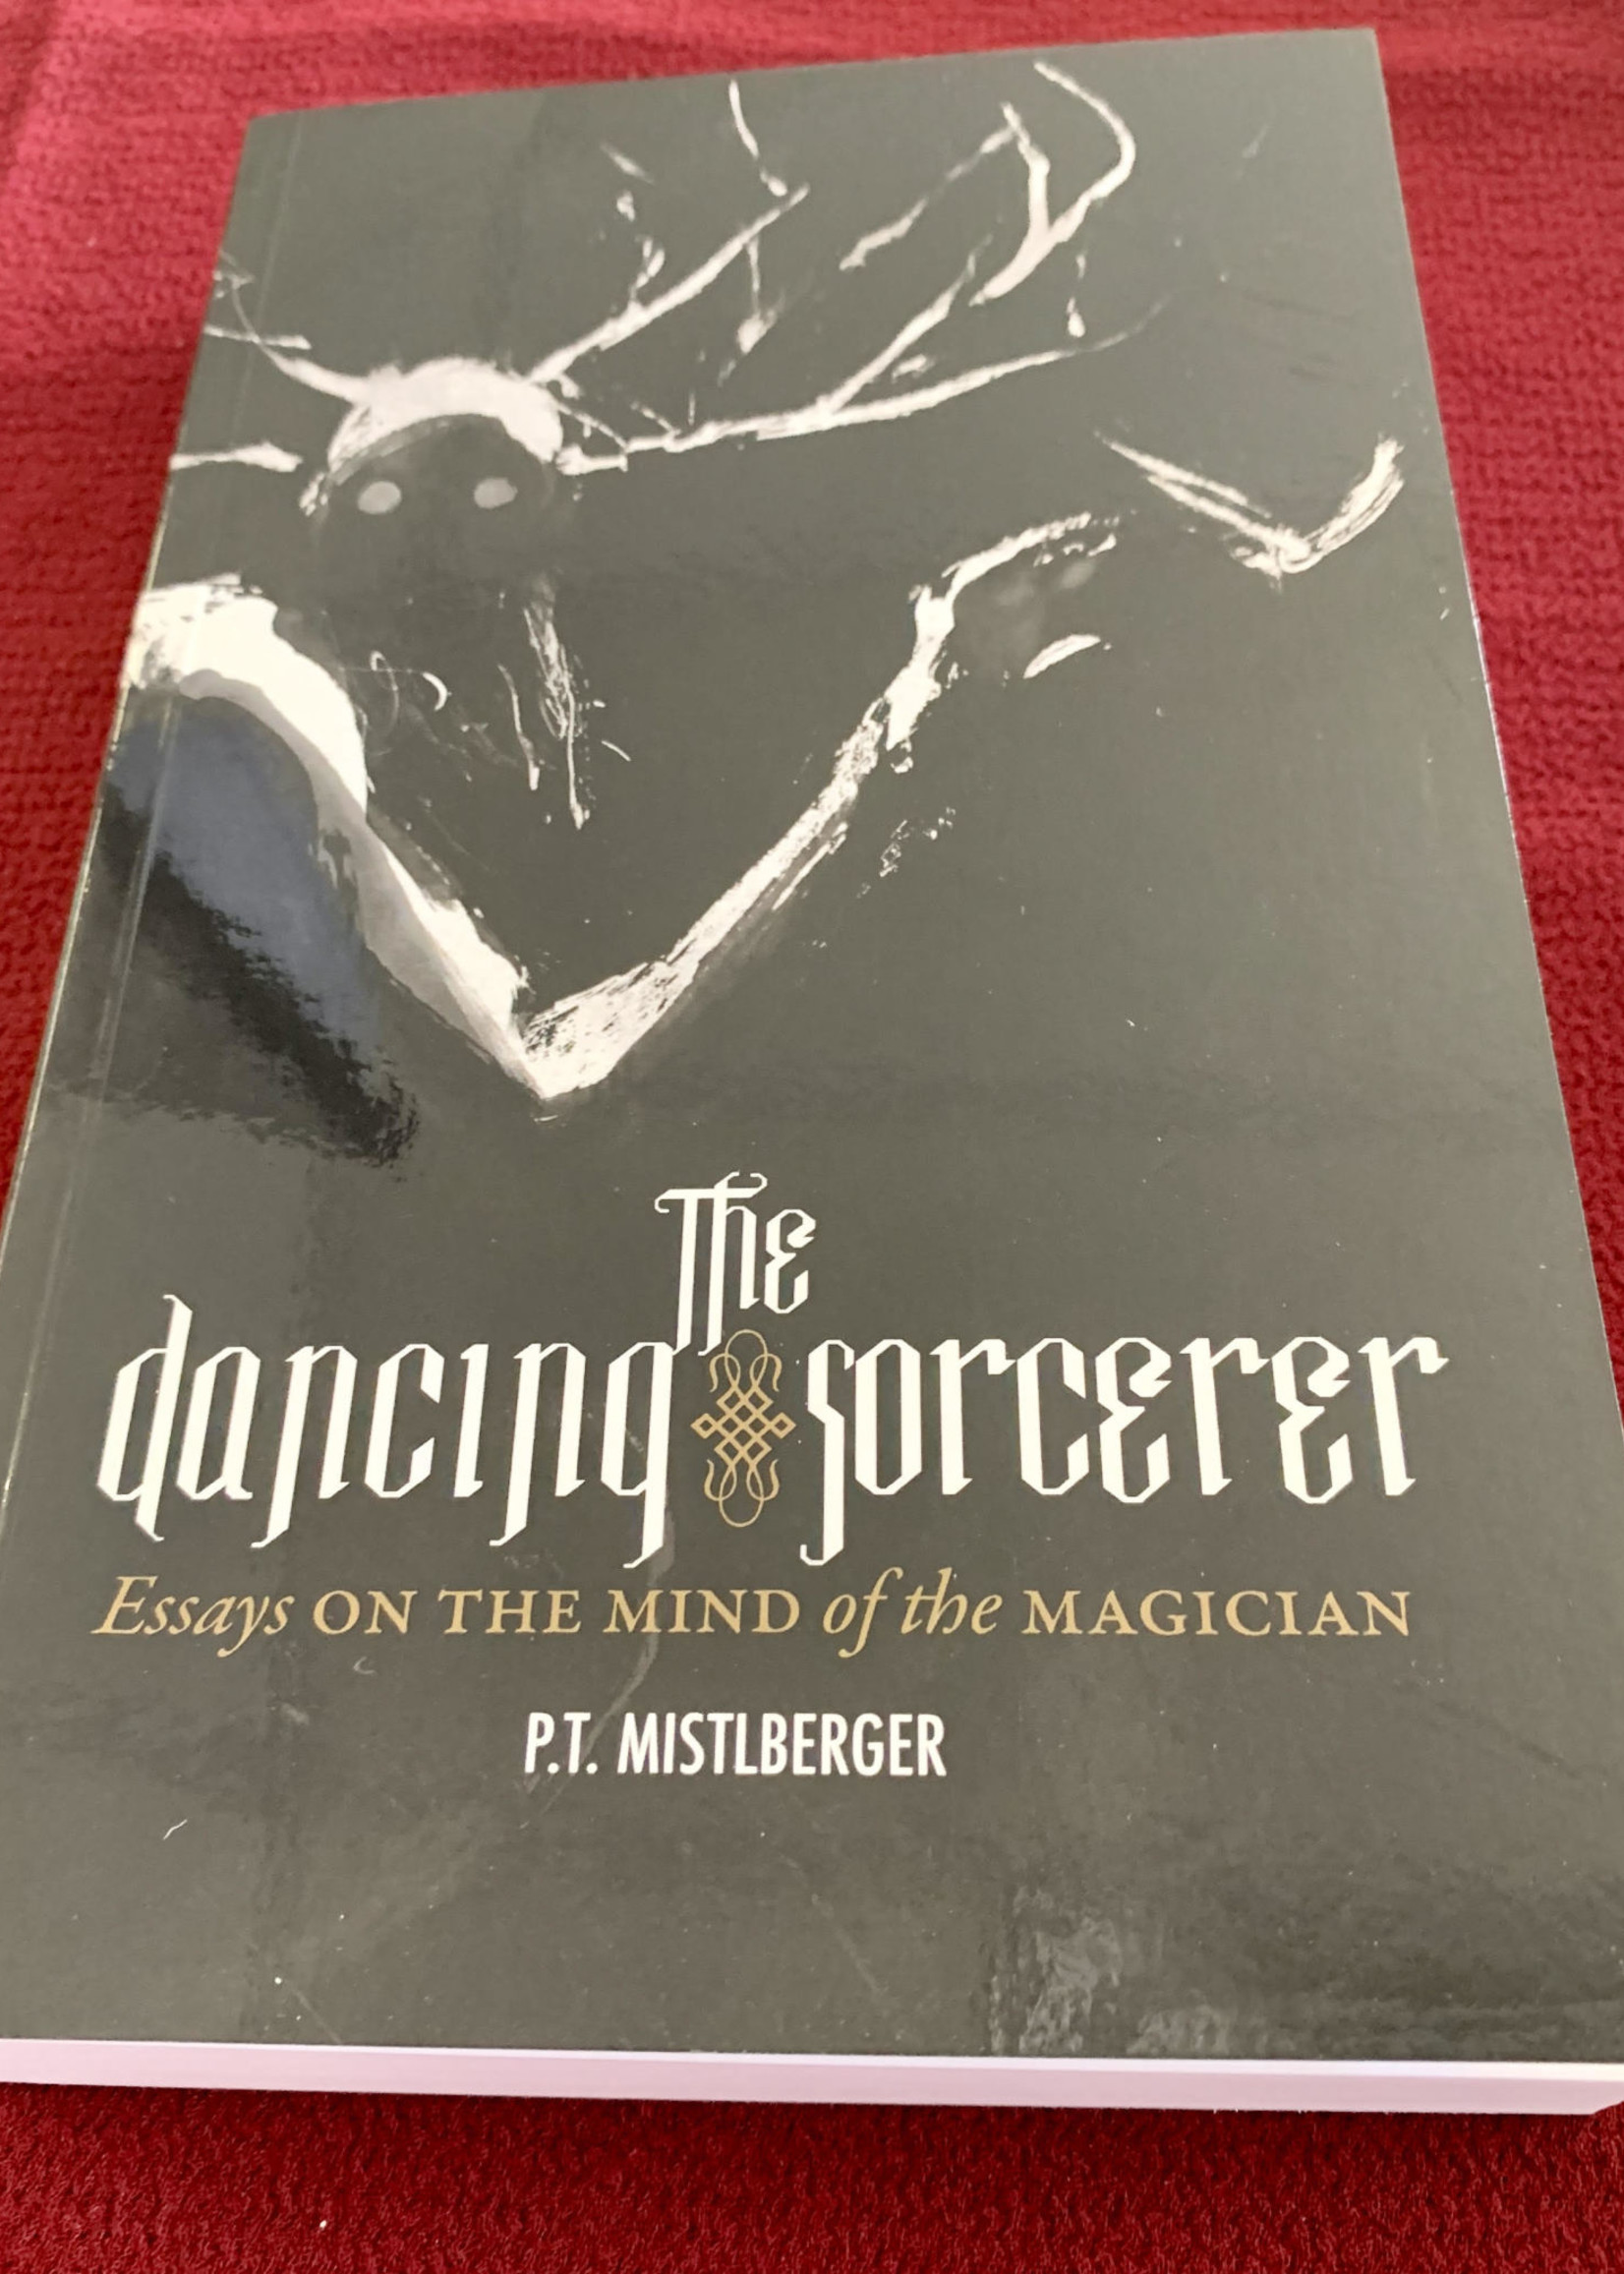 The Dancing Sorcerer Essays on the Mind of the Magician   by P.T. Mistlberger